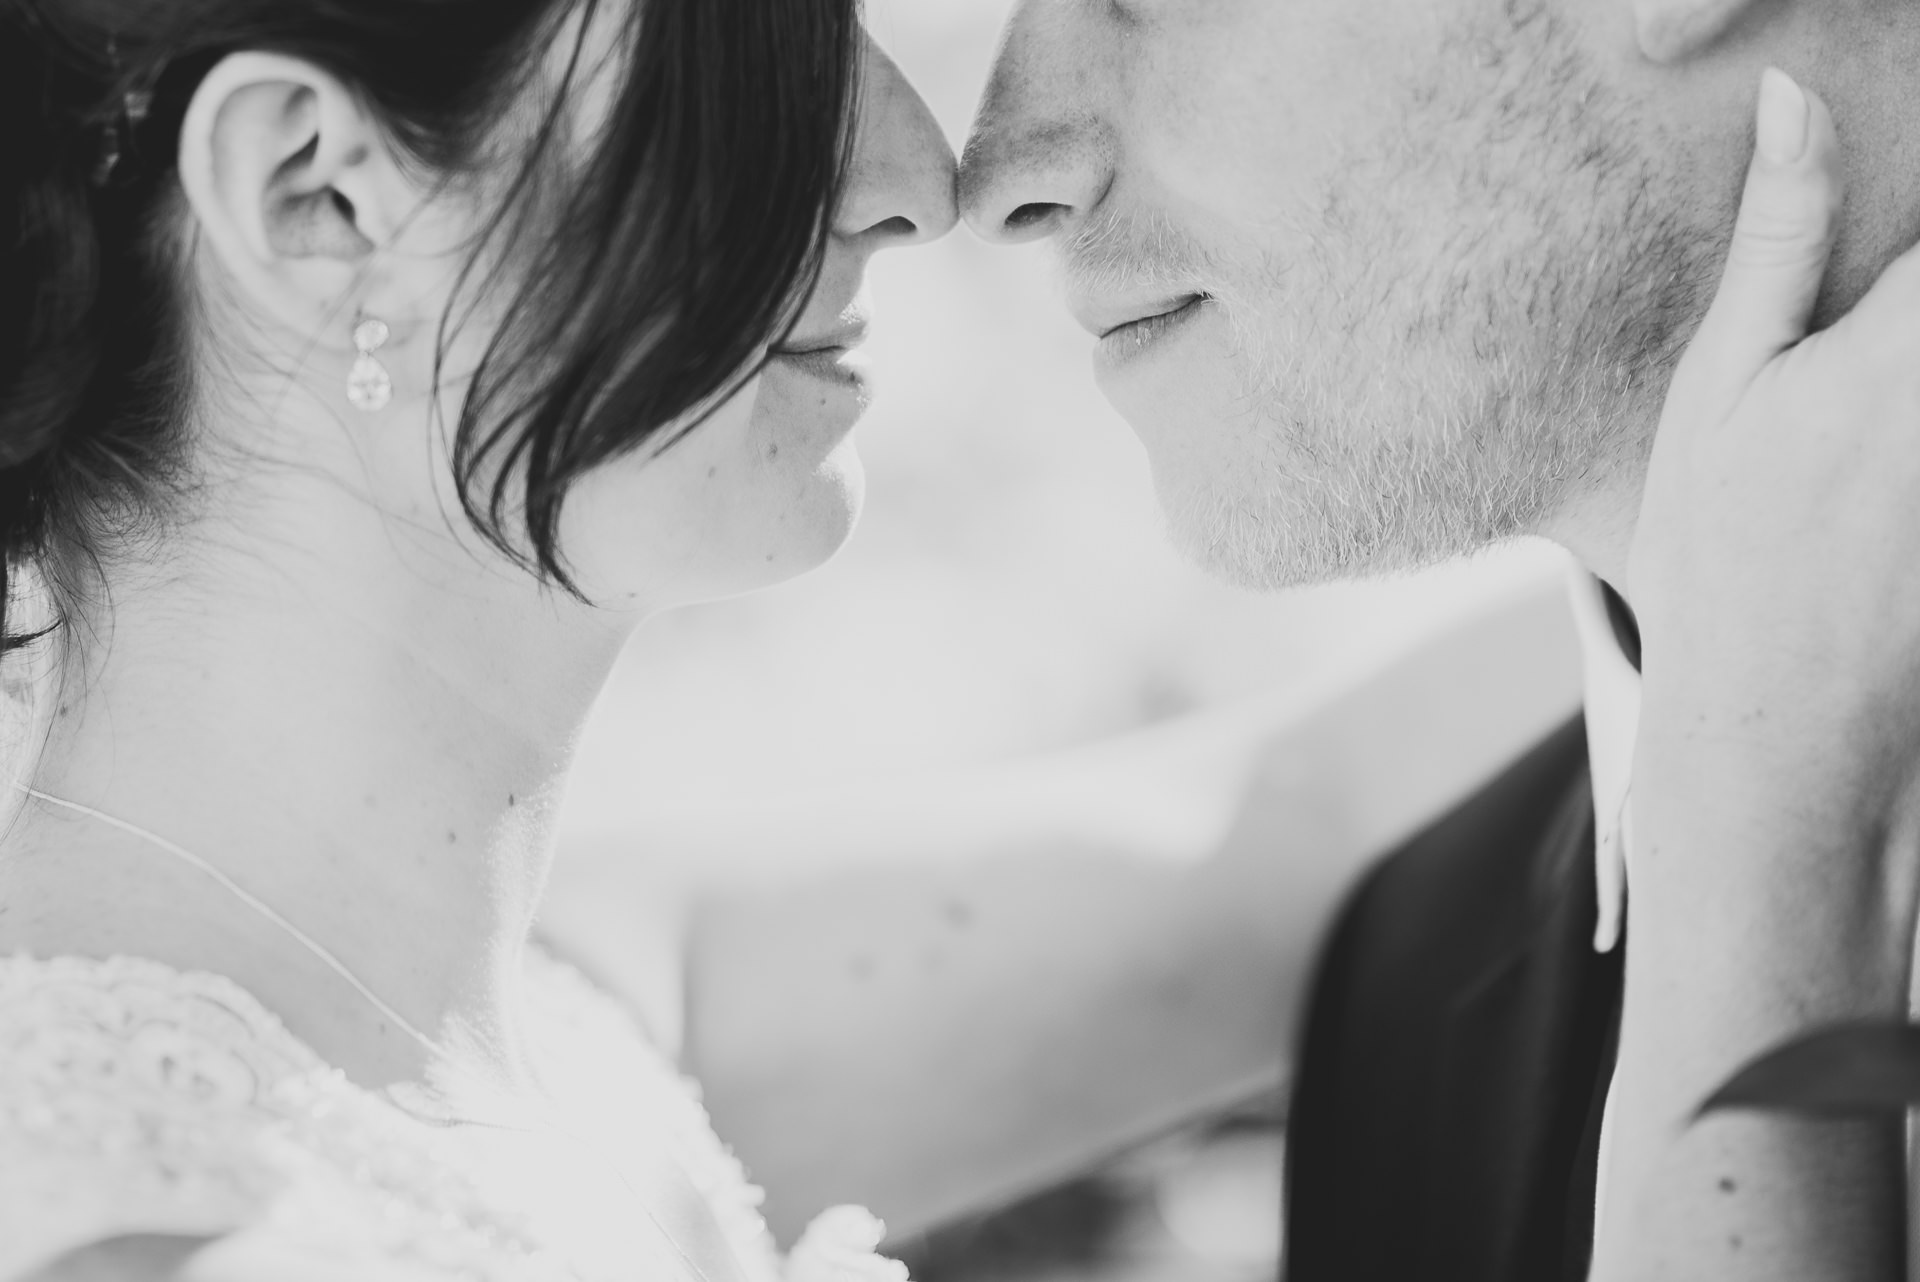 Touching noses in a romantic moment by a bride and groom at Charnock Farm Leyland Lancashire